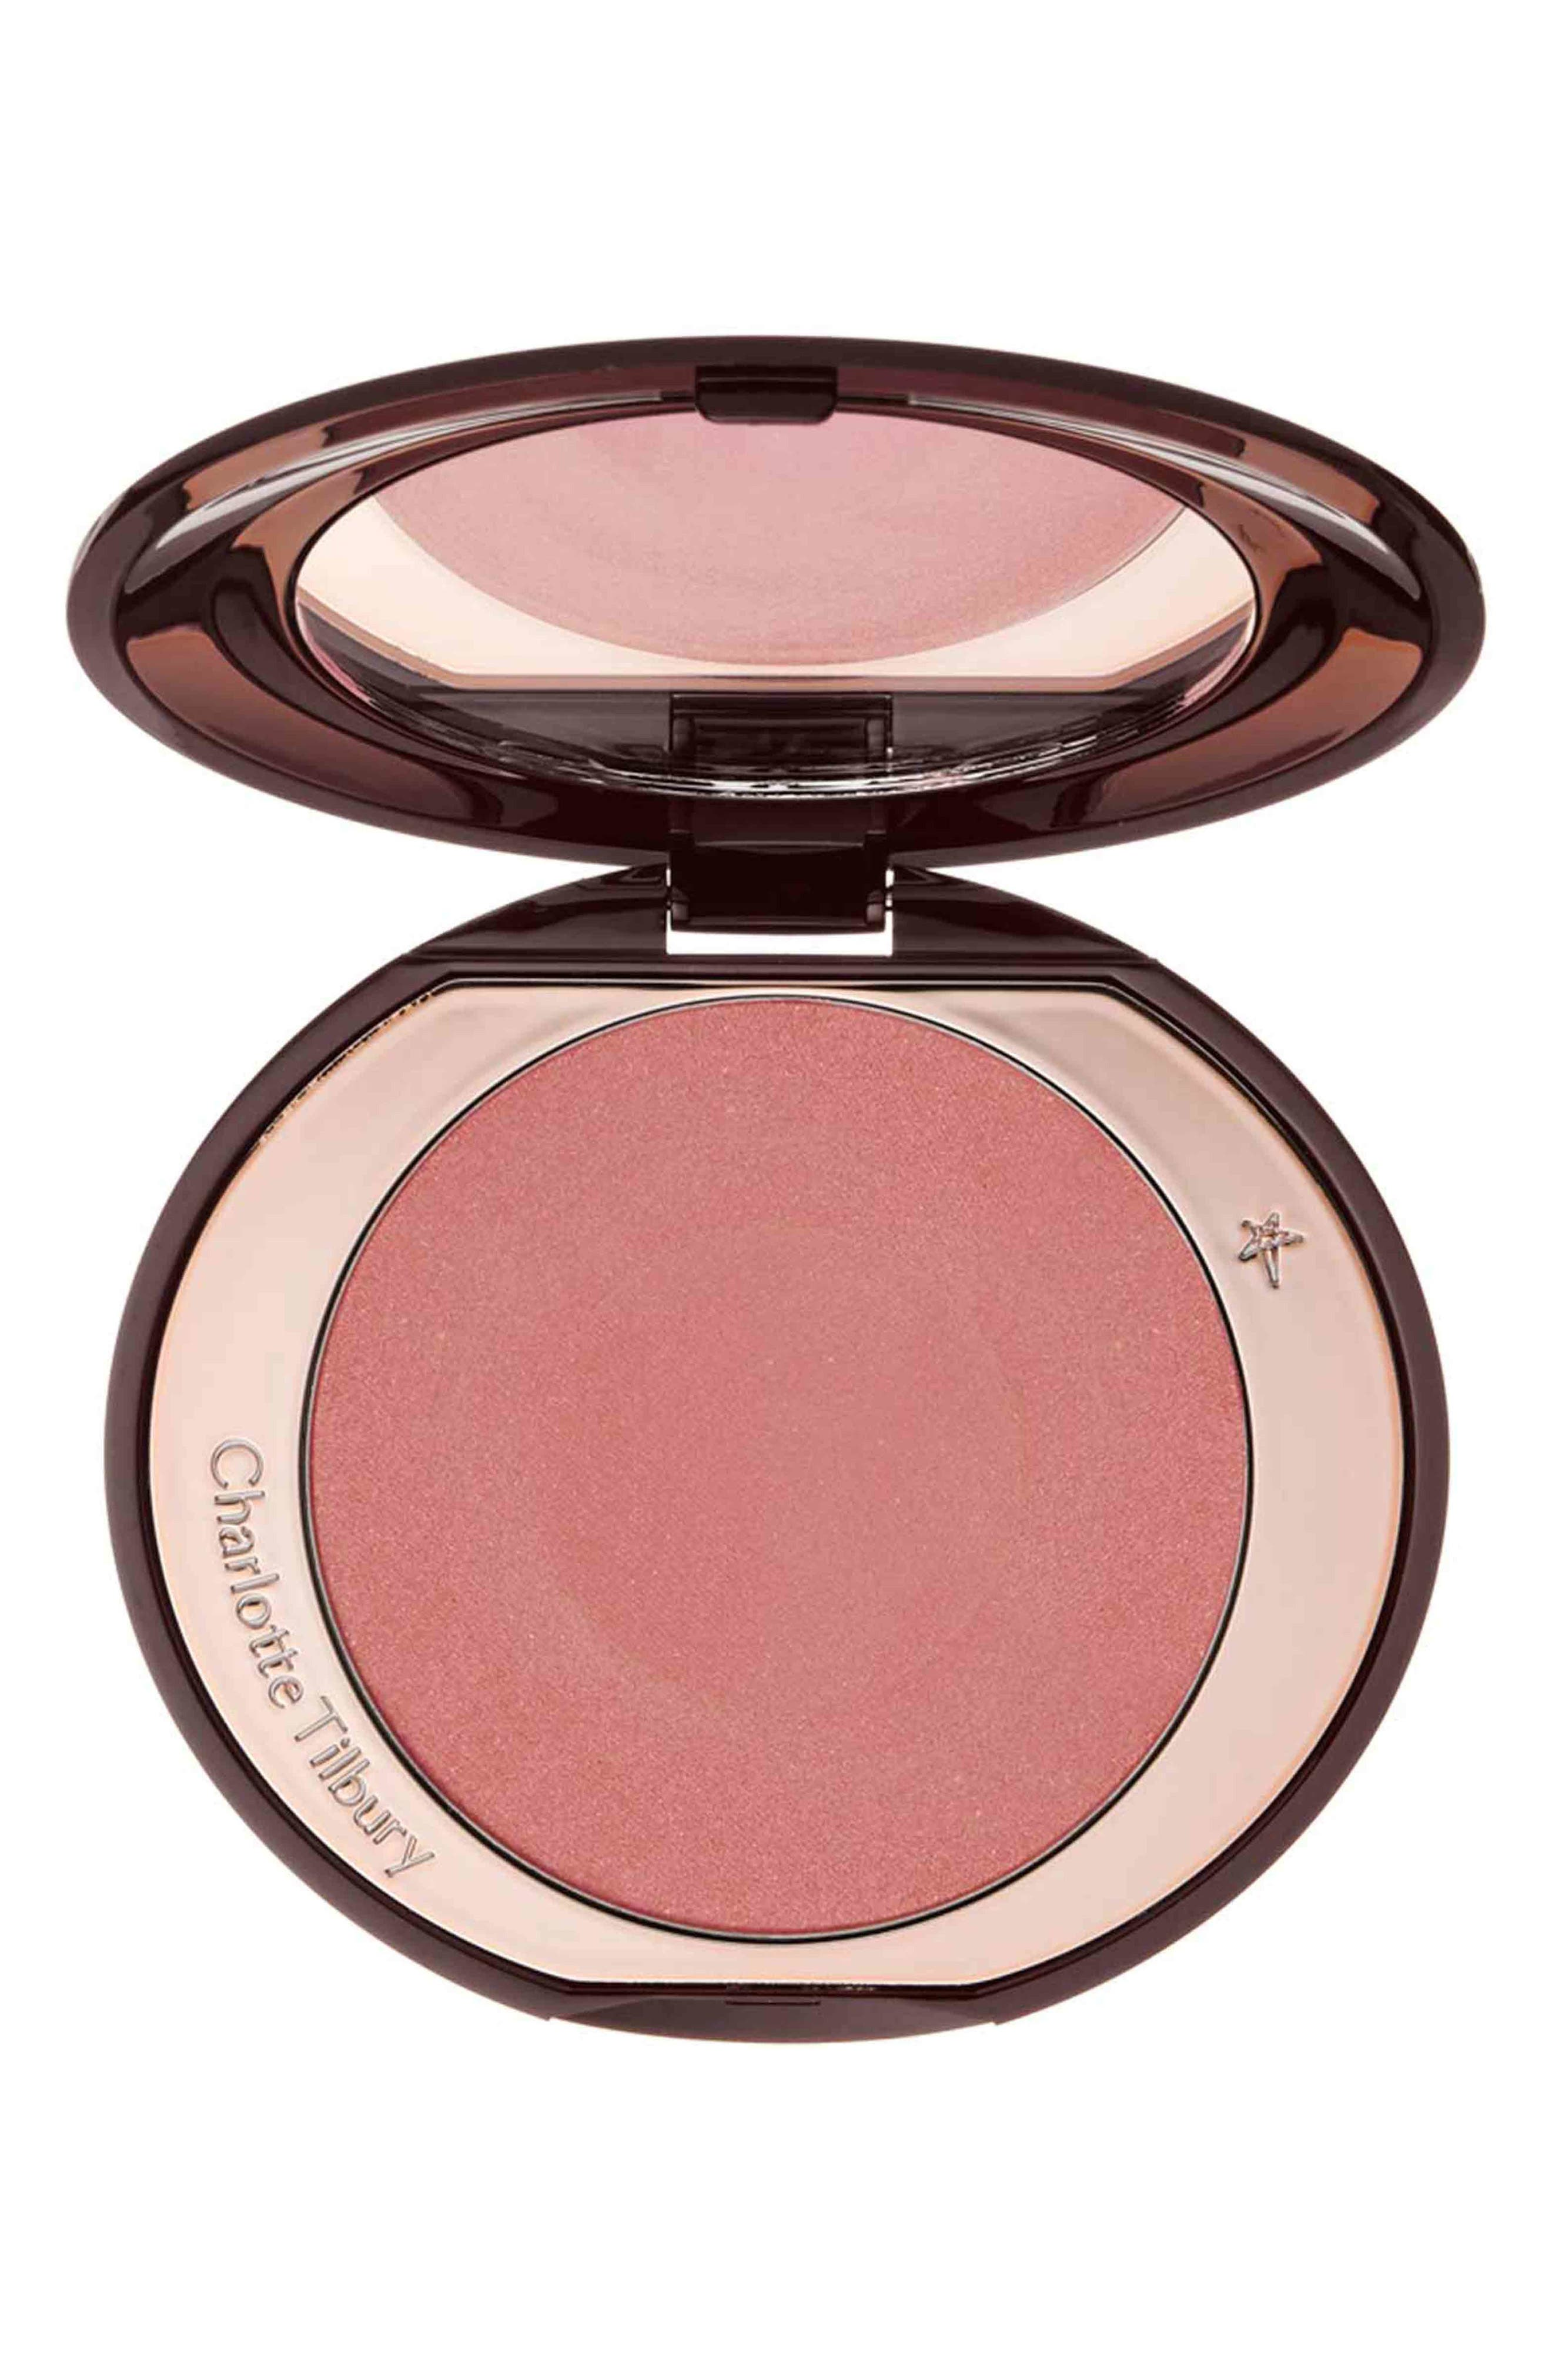 Cheek to Chic Blush,                             Main thumbnail 1, color,                             LOVE GLOW